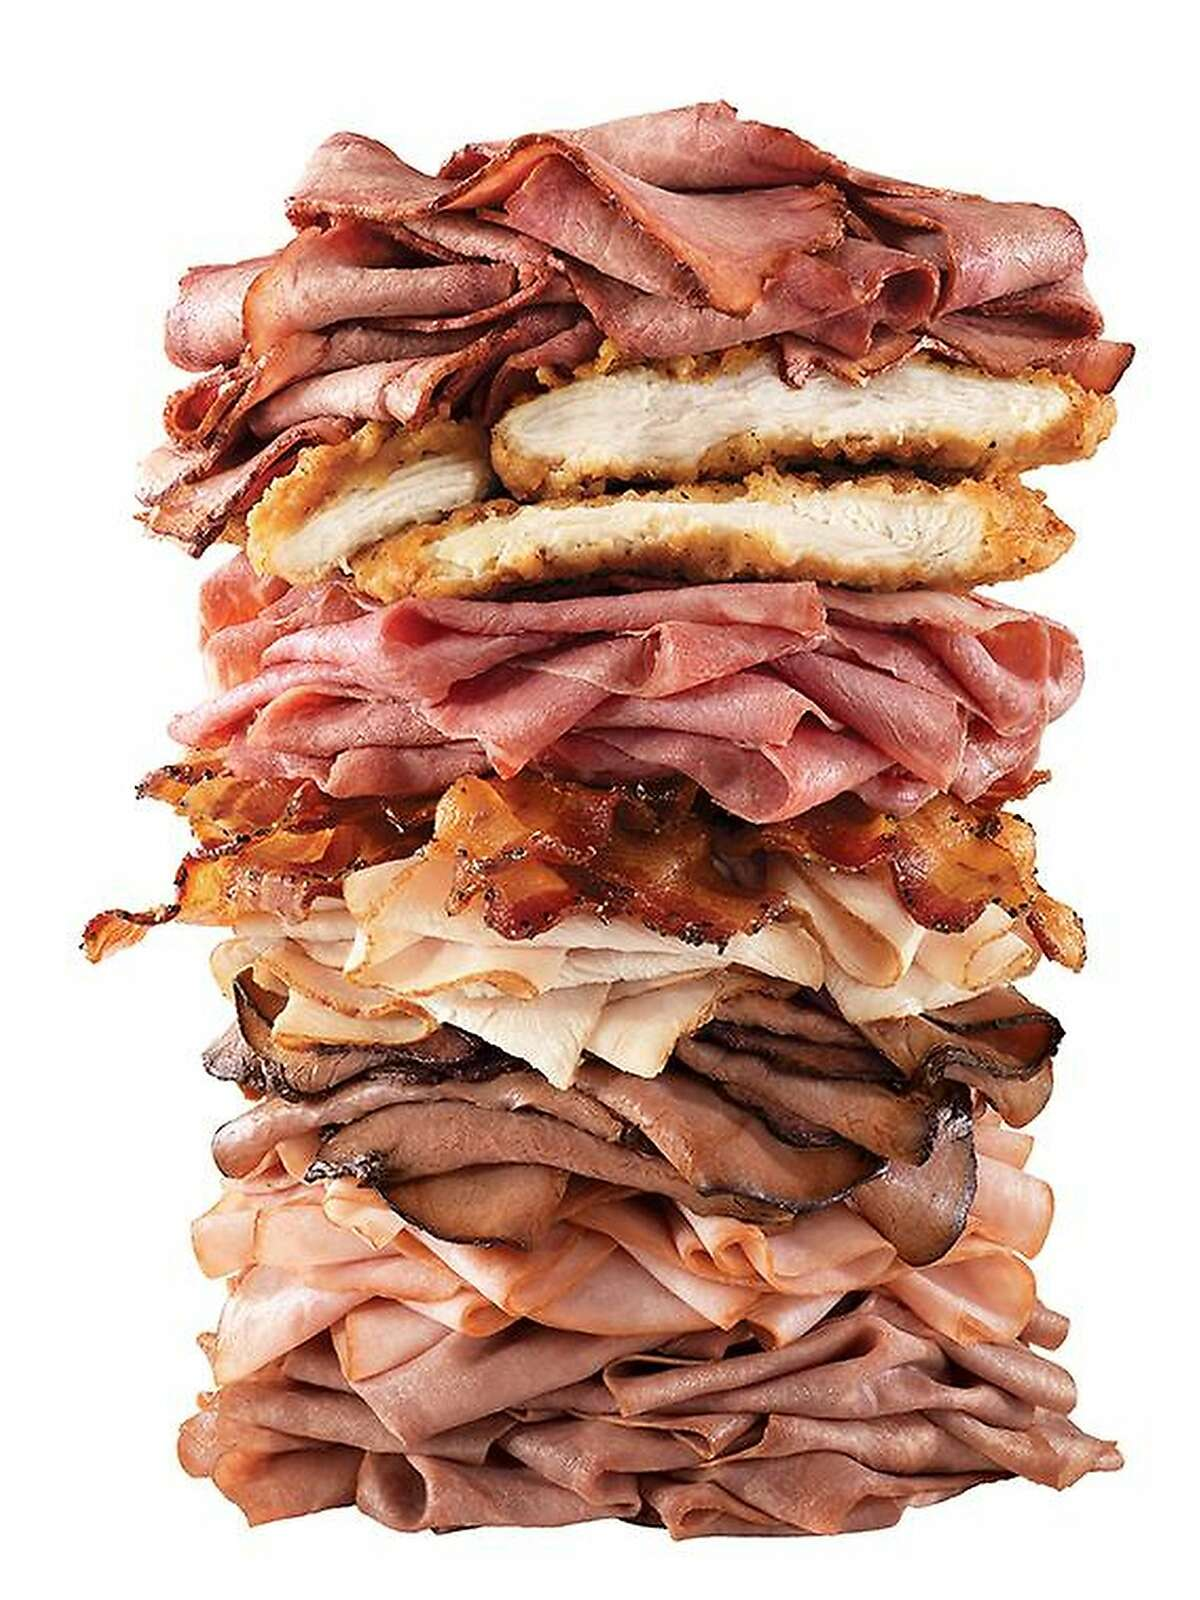 Arby's Meat Mountain File this monstrosity under